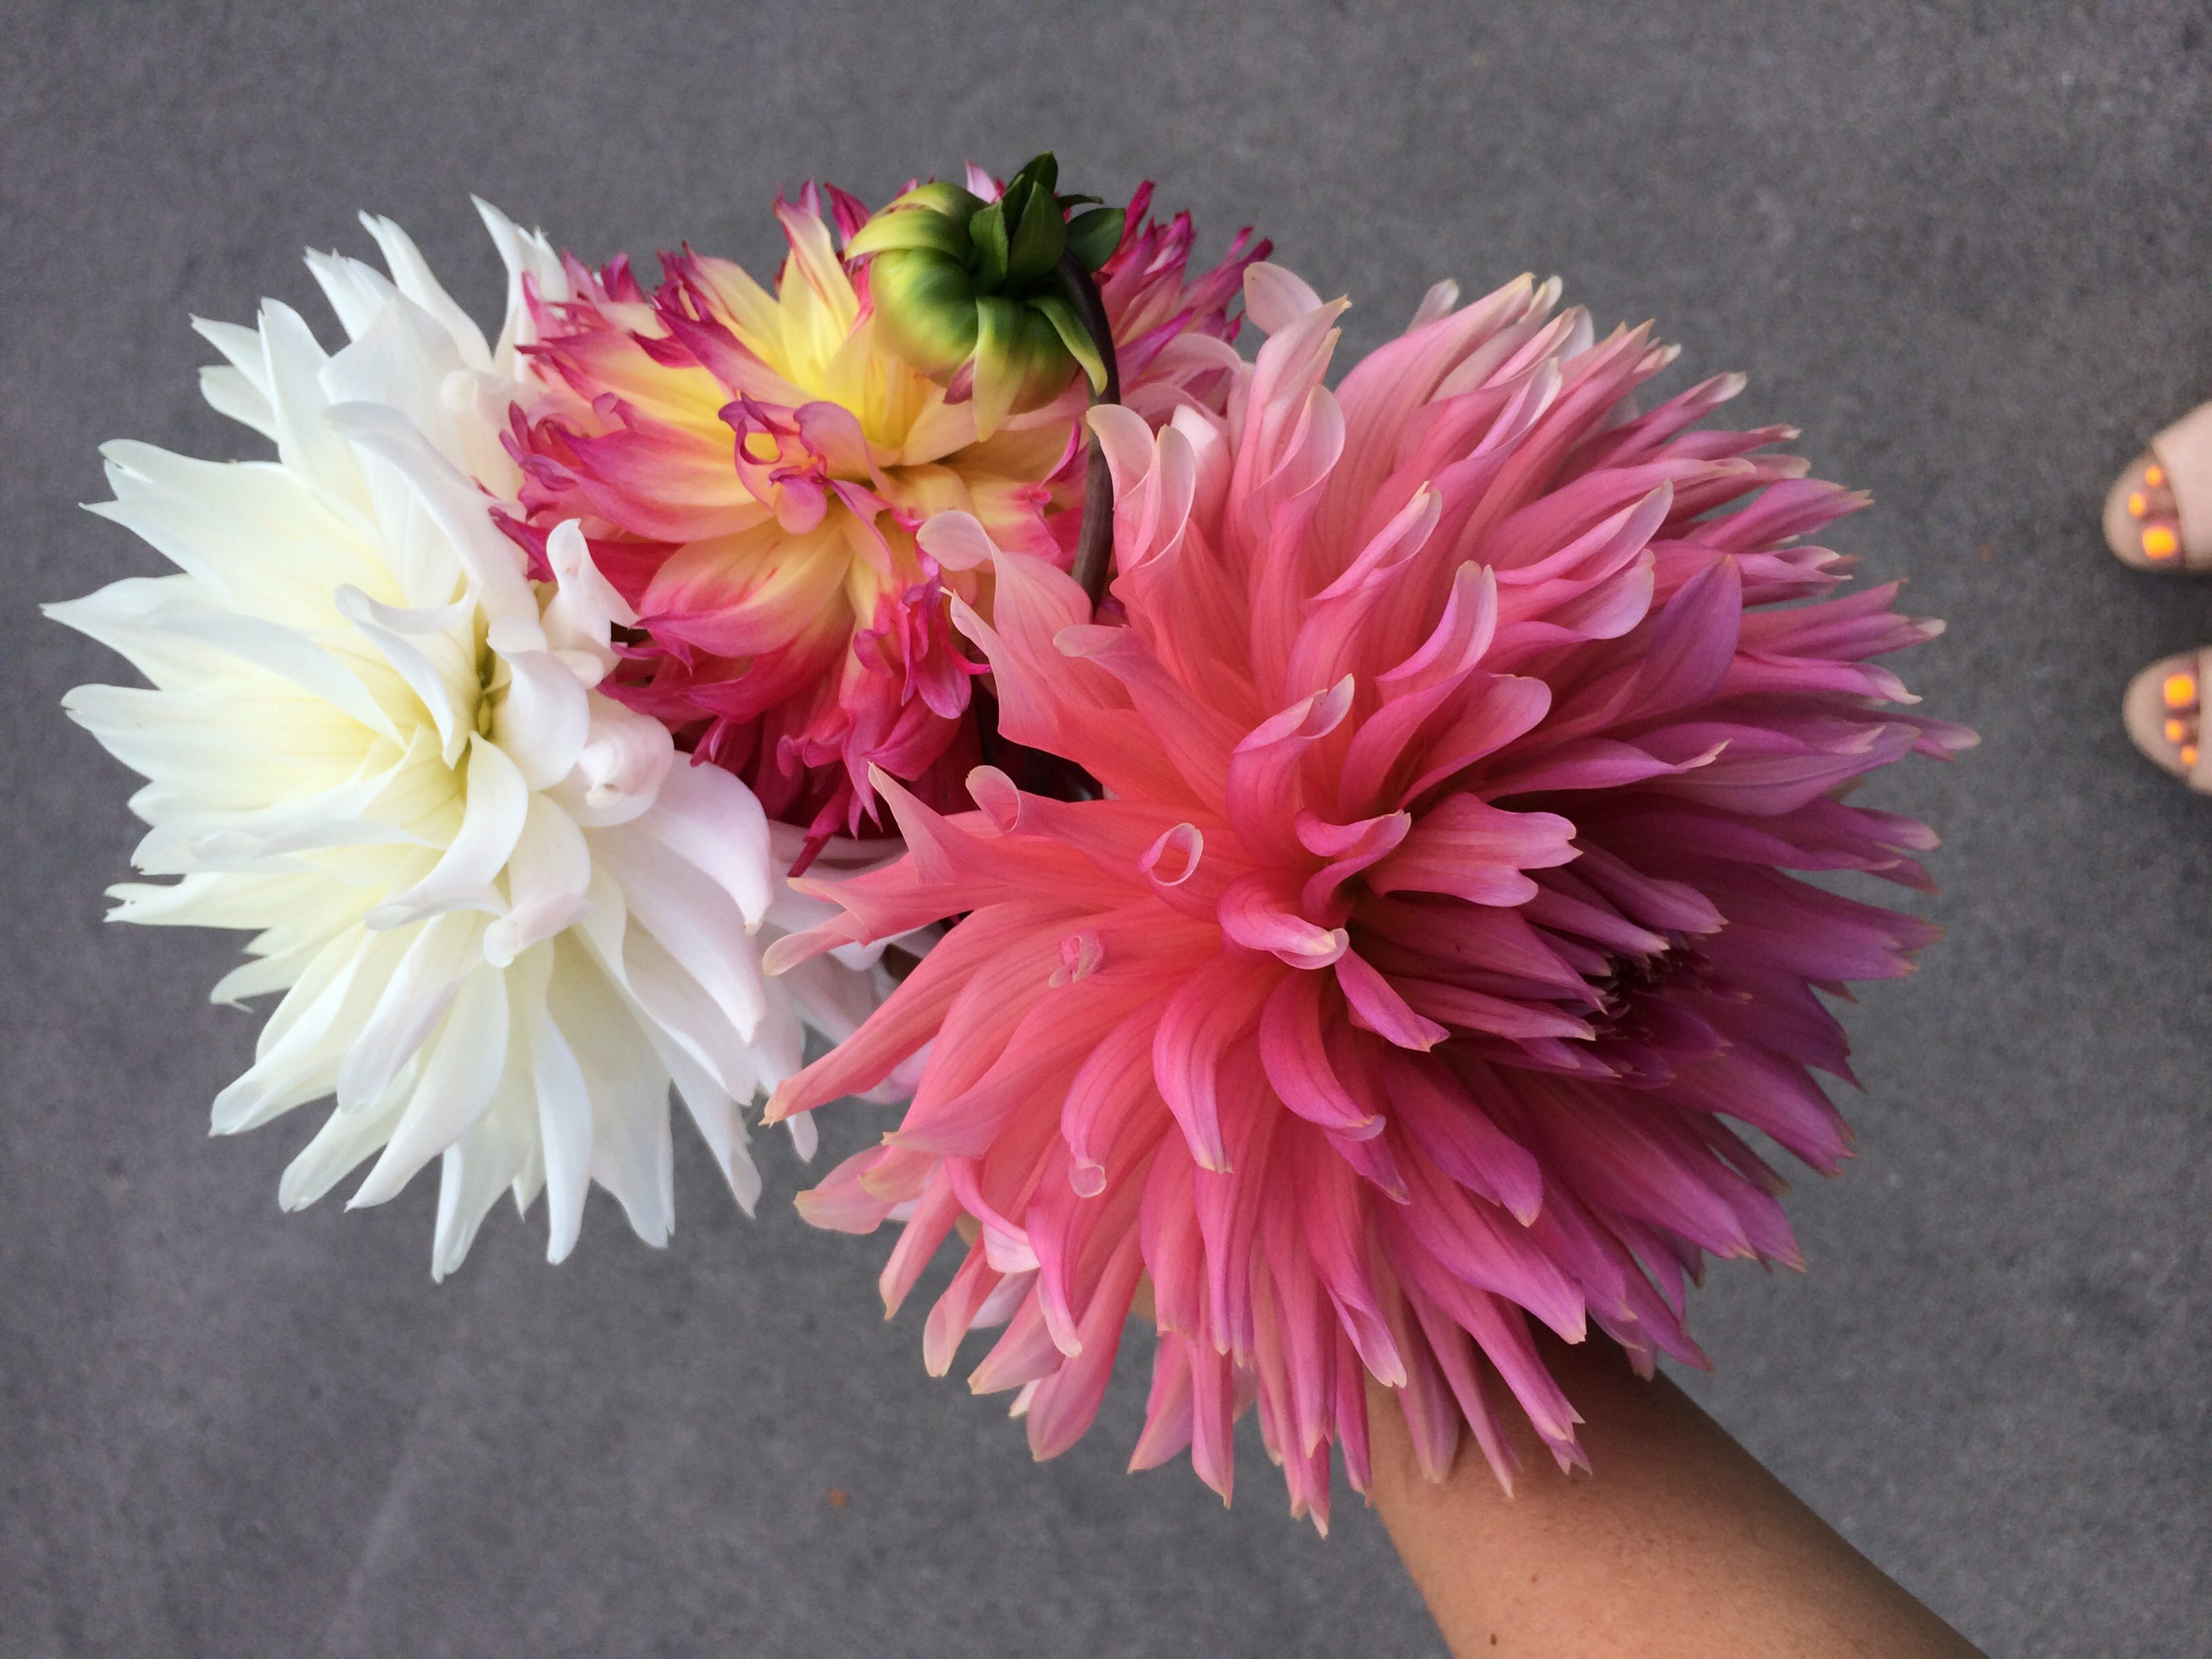 The prettiest dahlias at Tim + Hannah's wedding last weekend.